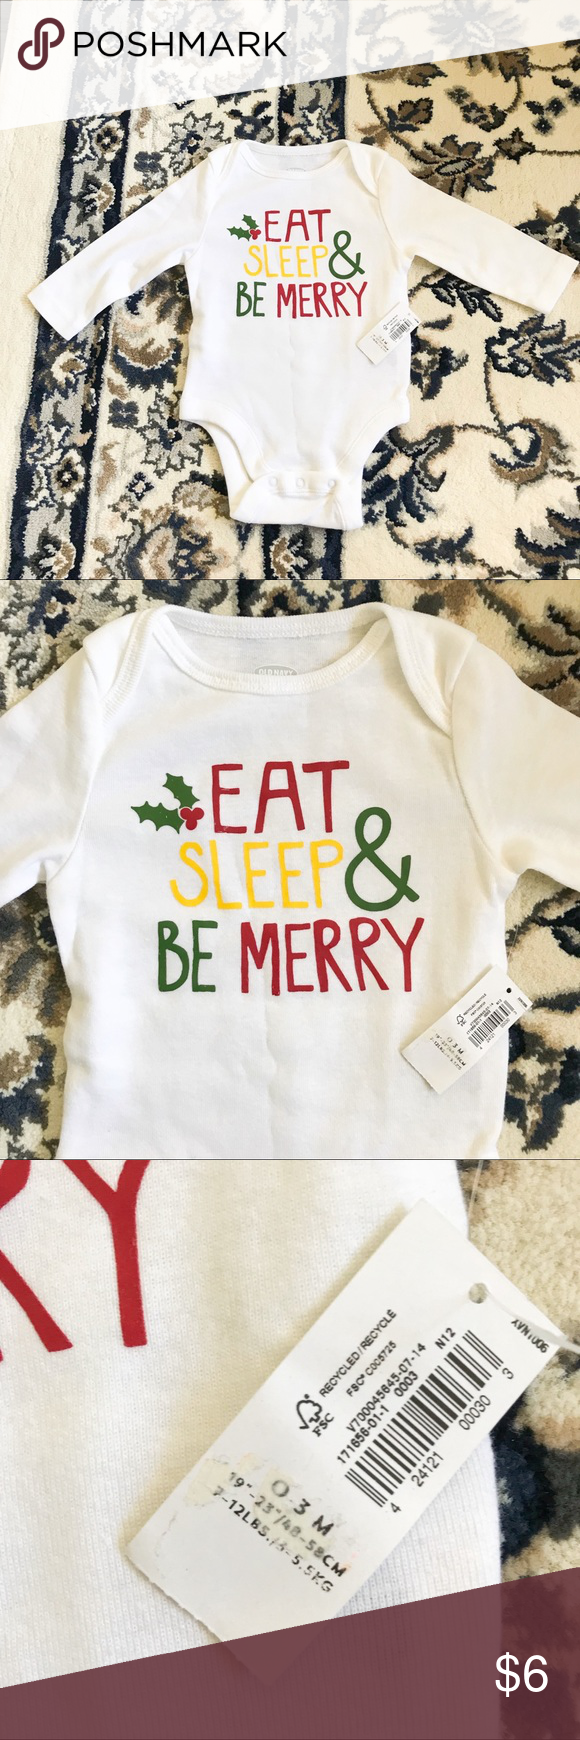 Old Navy Toddler Christmas Shirts - Capital Facility Management